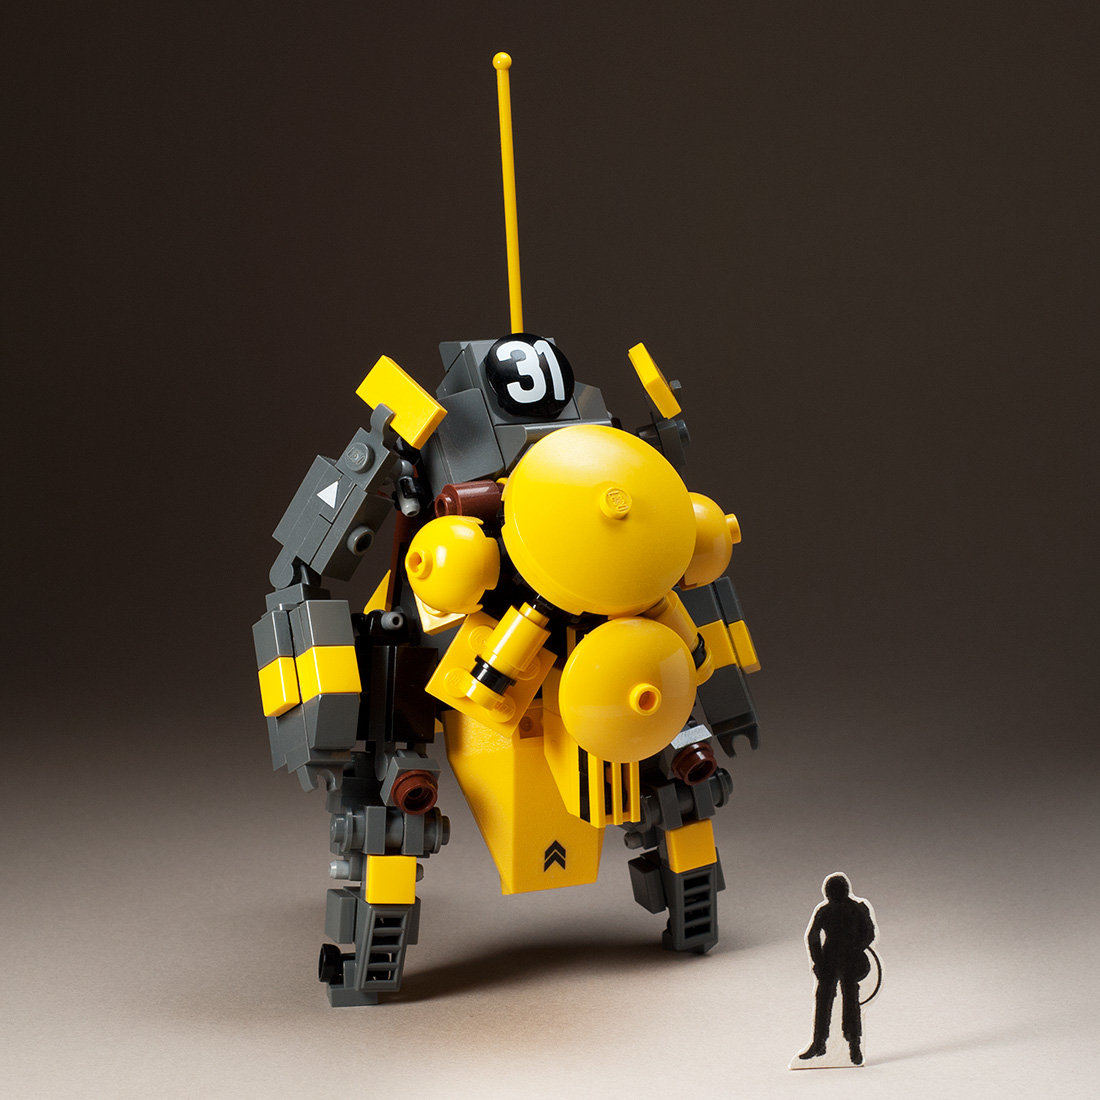 Lego Creation 2 - Dan McPharlin